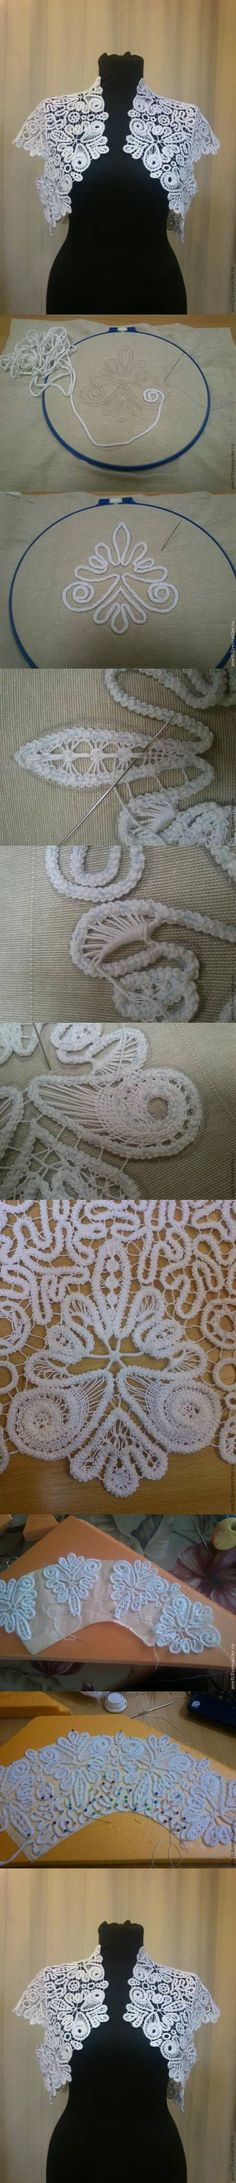 DIY Romanian Lace